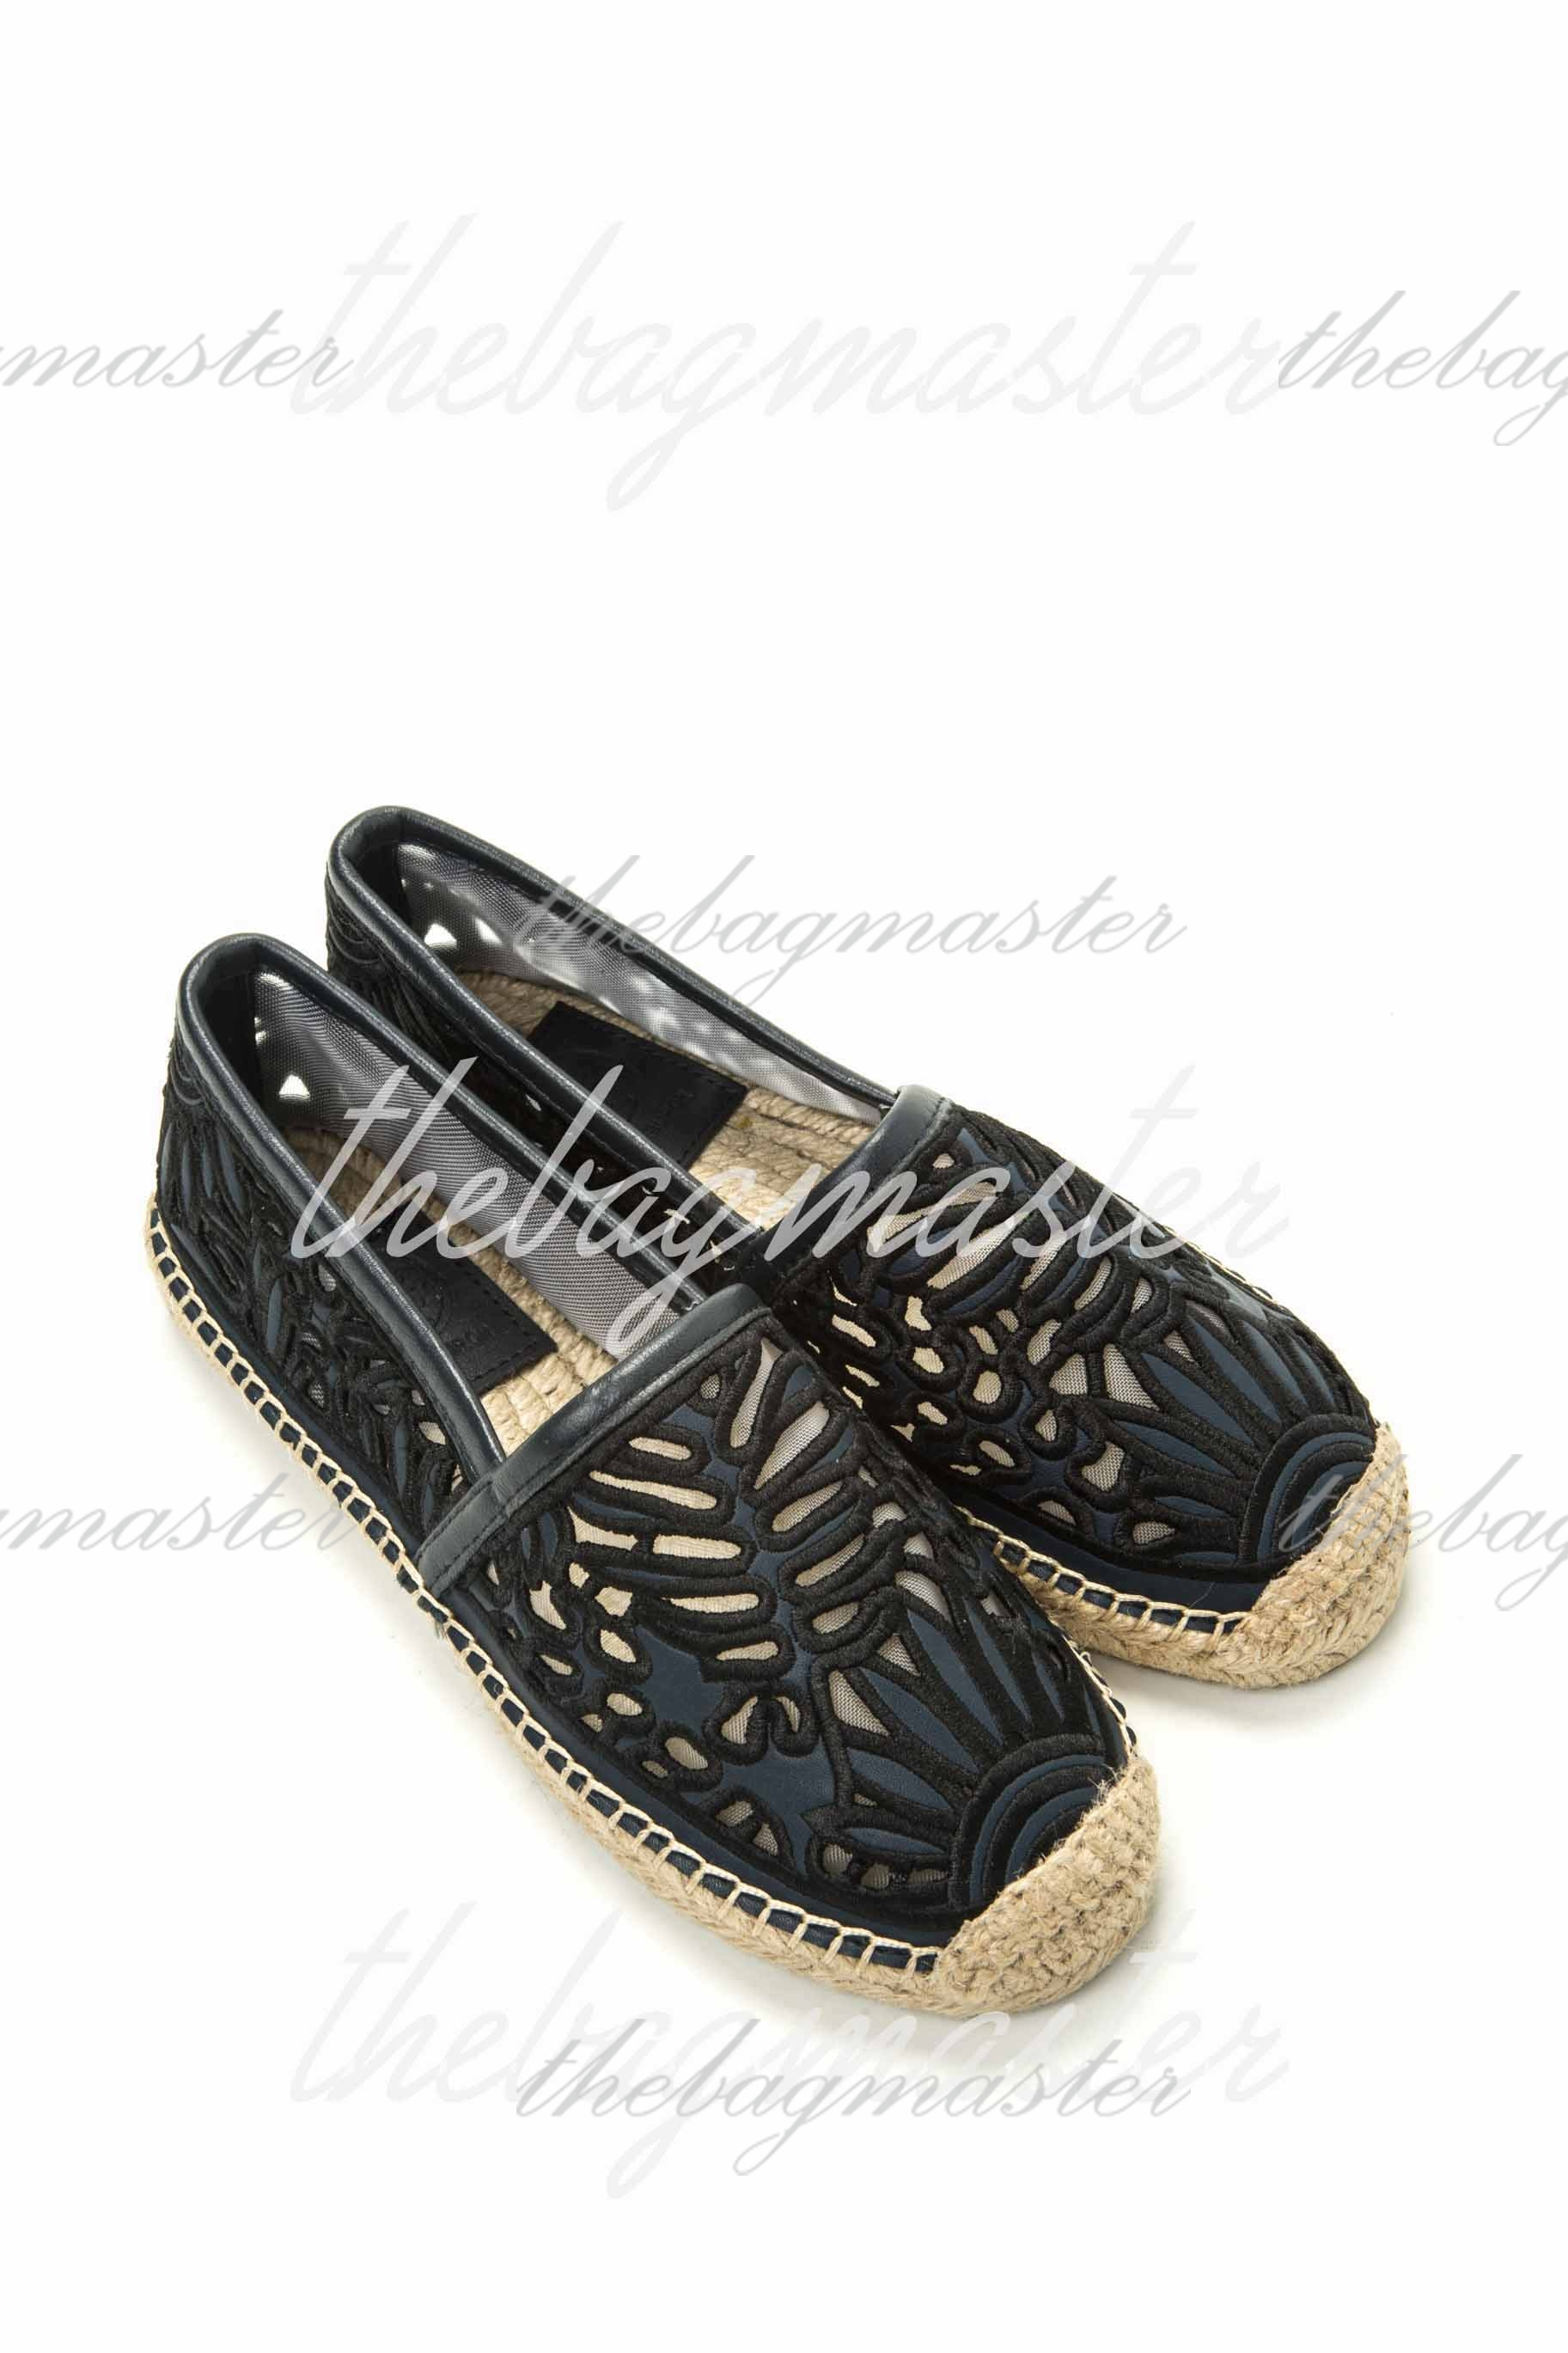 7b61b9ef83a Tory Burch Espadrille Flats Rhea Lace Size 5 - Navy Blue — The ...